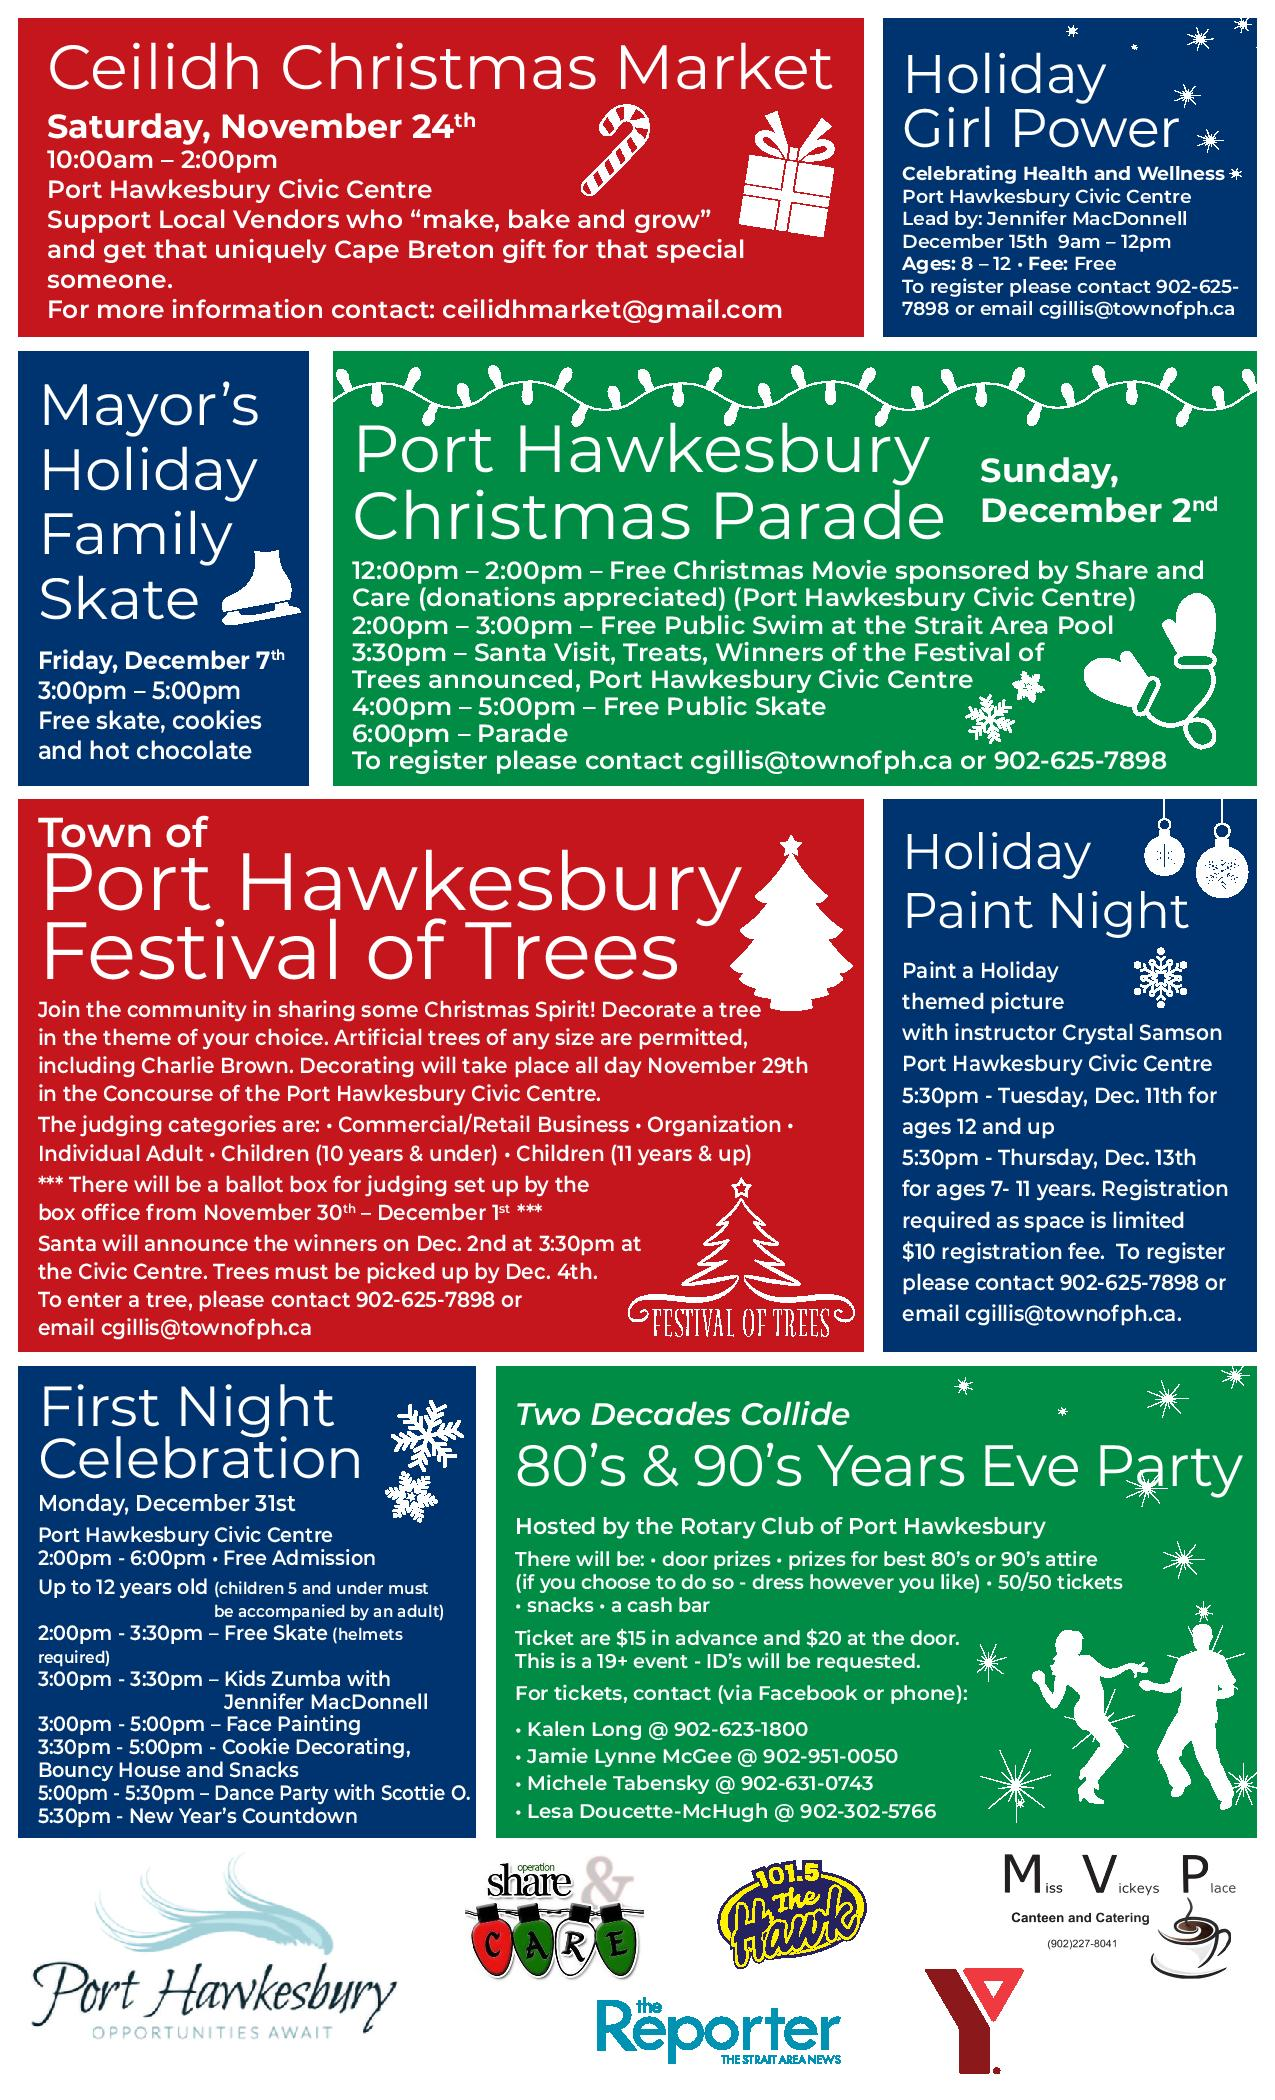 Town of Port Hawkesbury - Town of Port Hawkesbury Holiday Flyer